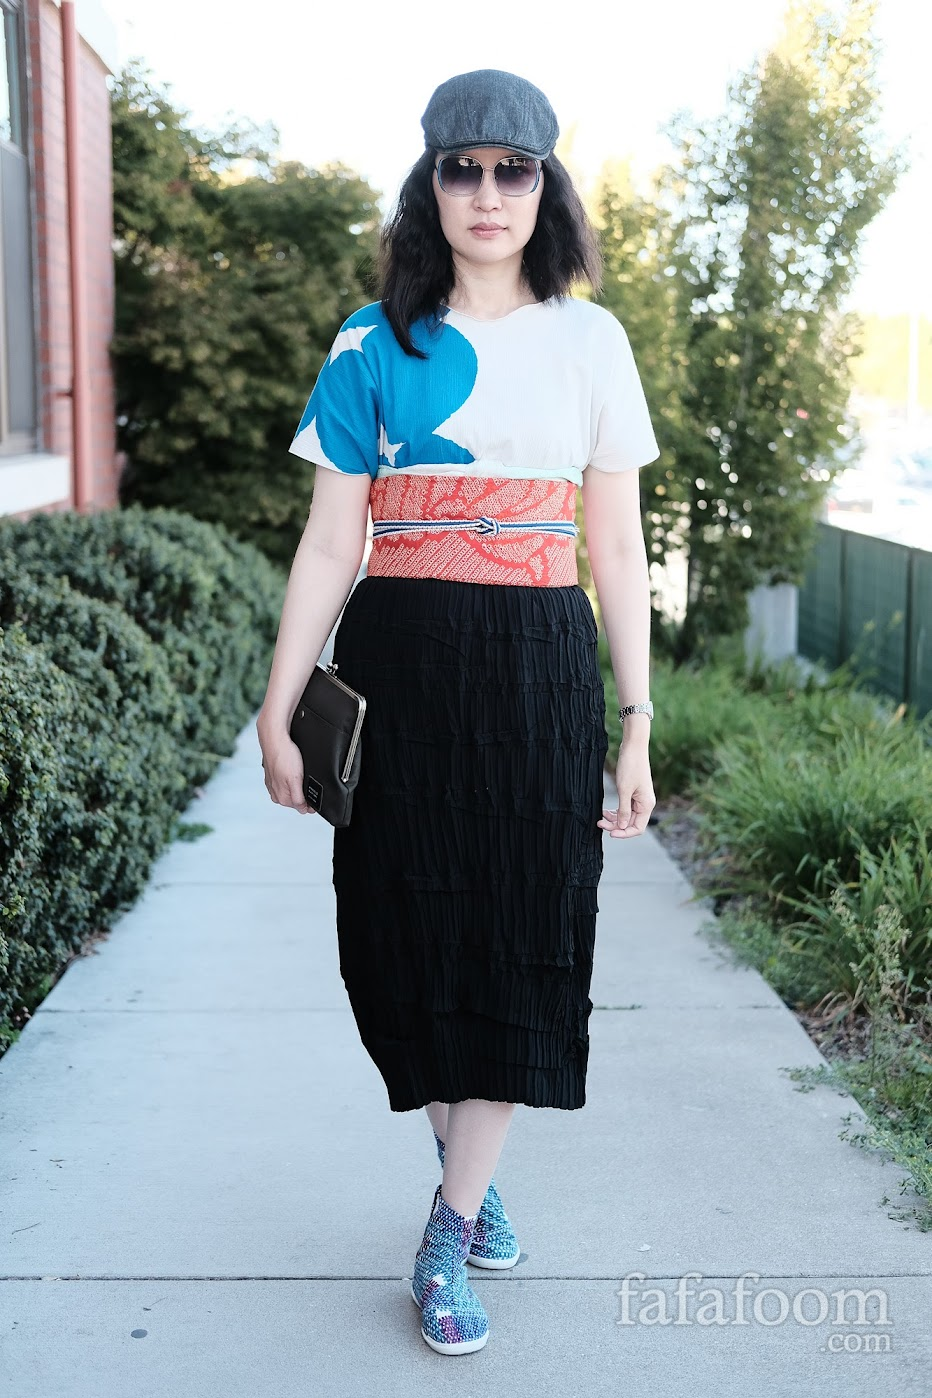 Modern Styling: Obi Sash with obiage, obijime, top, midi skirt, and tabi shoes - Style Notes | fafafoom.com